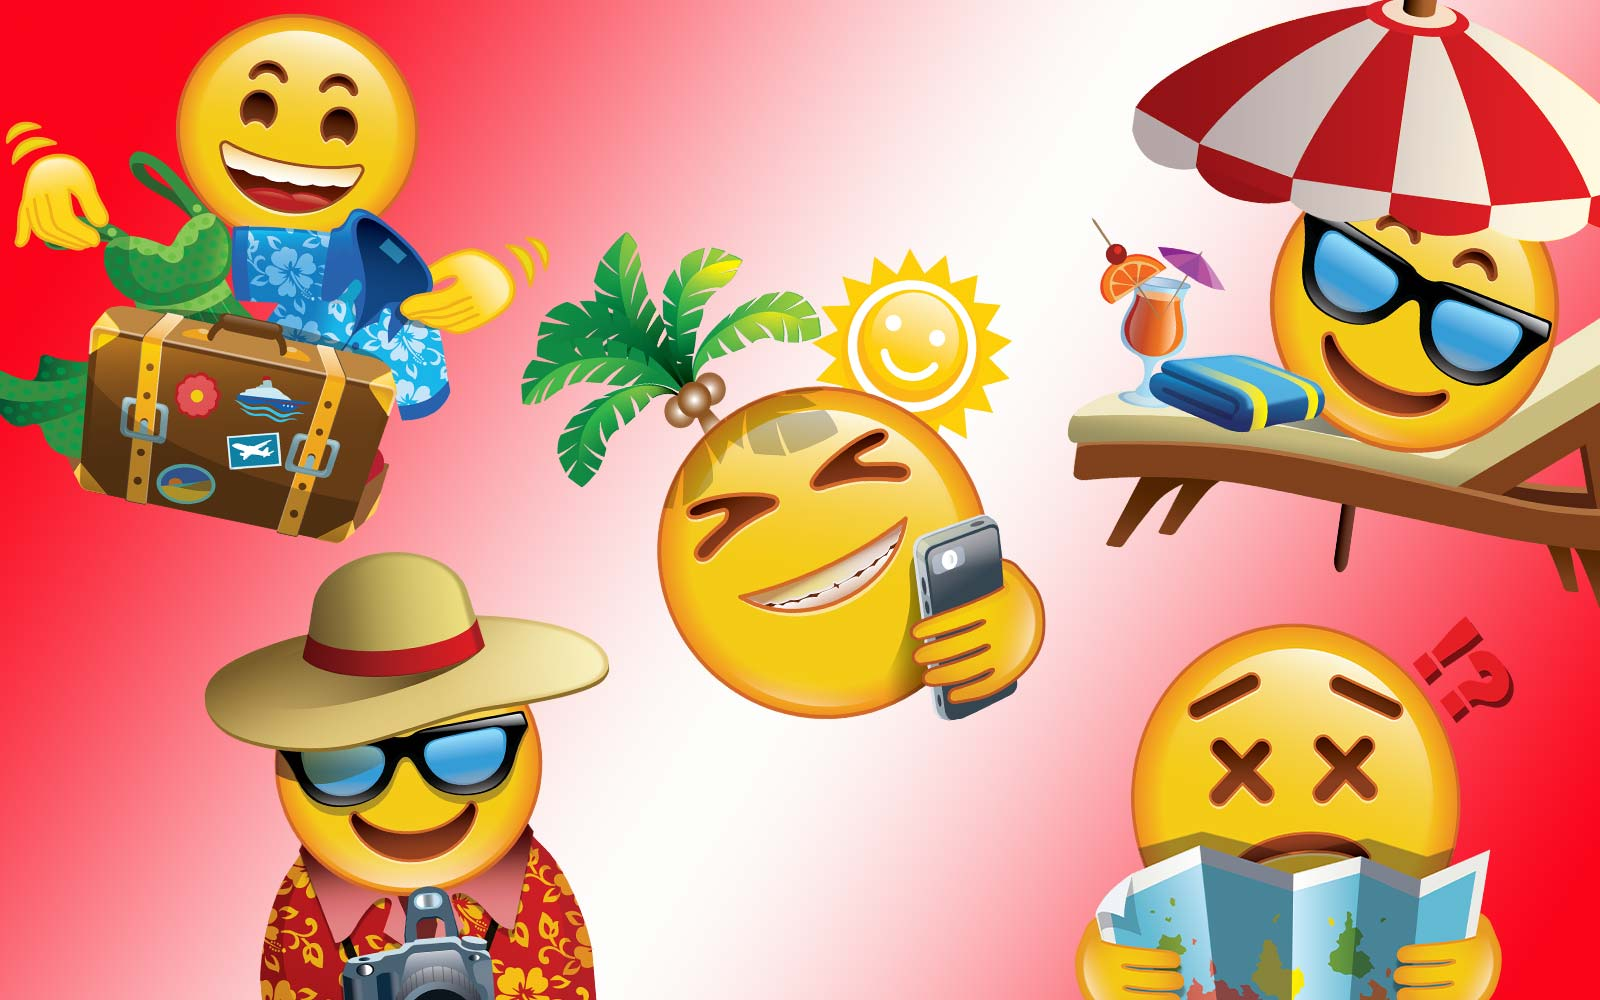 Booking.com Vacation Social Media Emojis